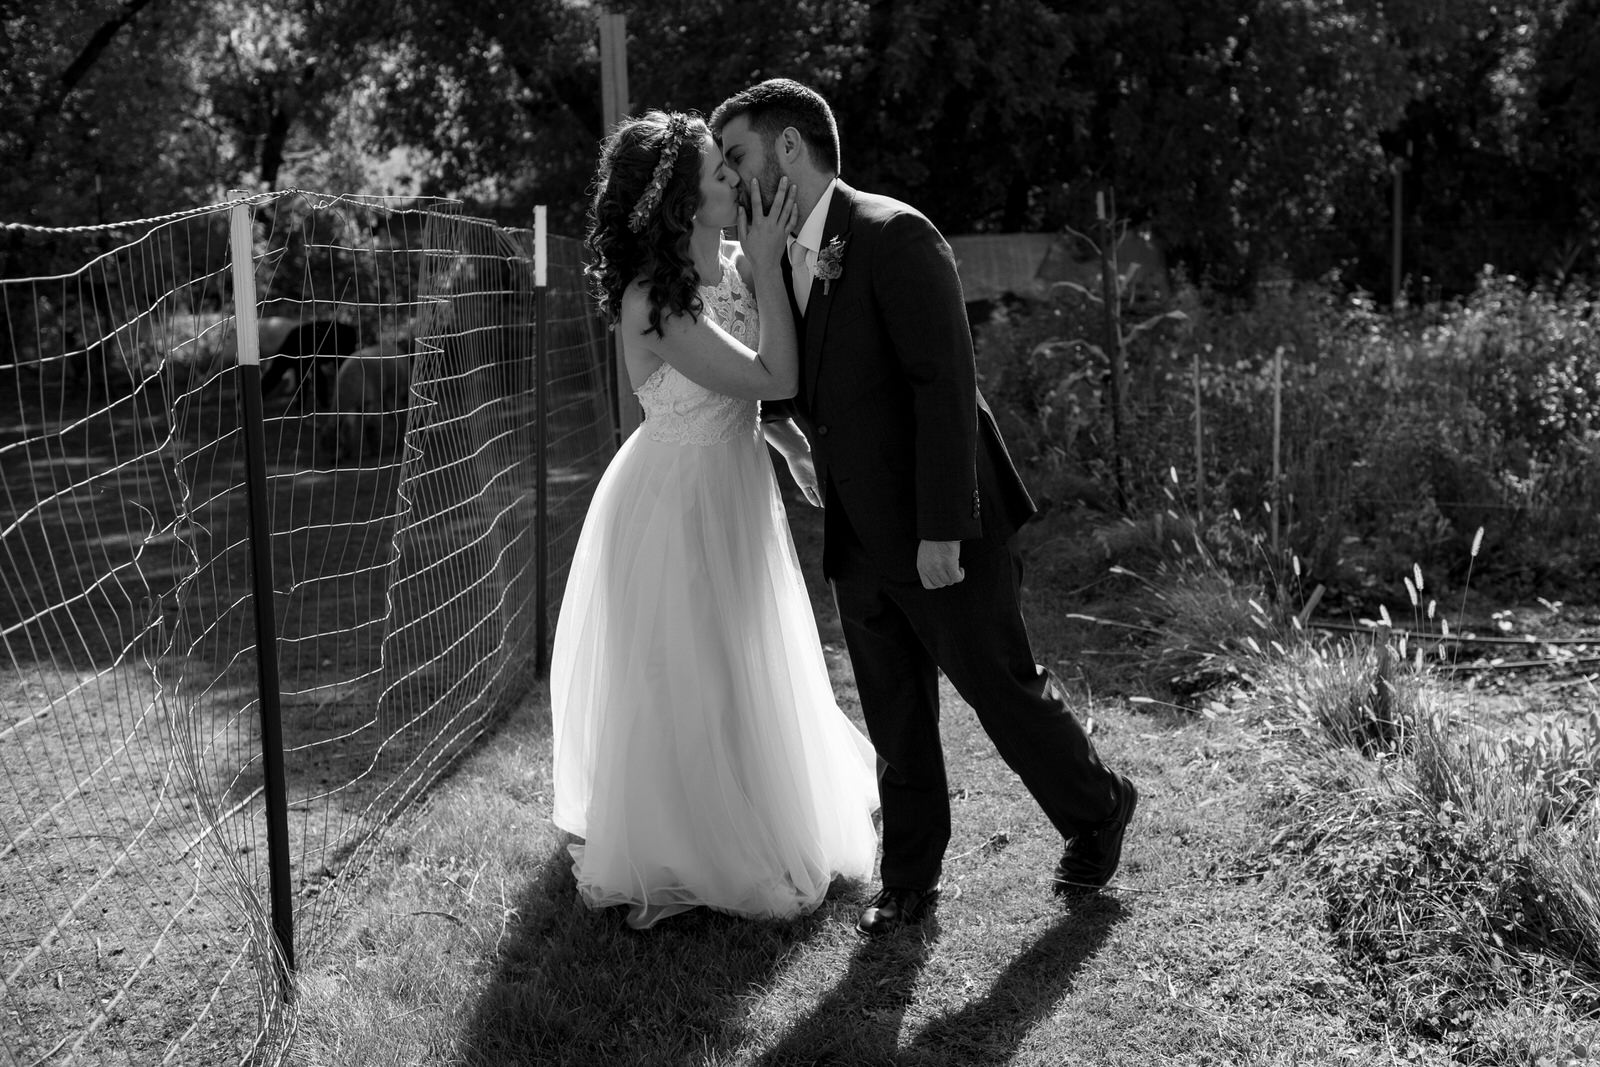 a couple in black and while passionately kissing in the garden next to a fence